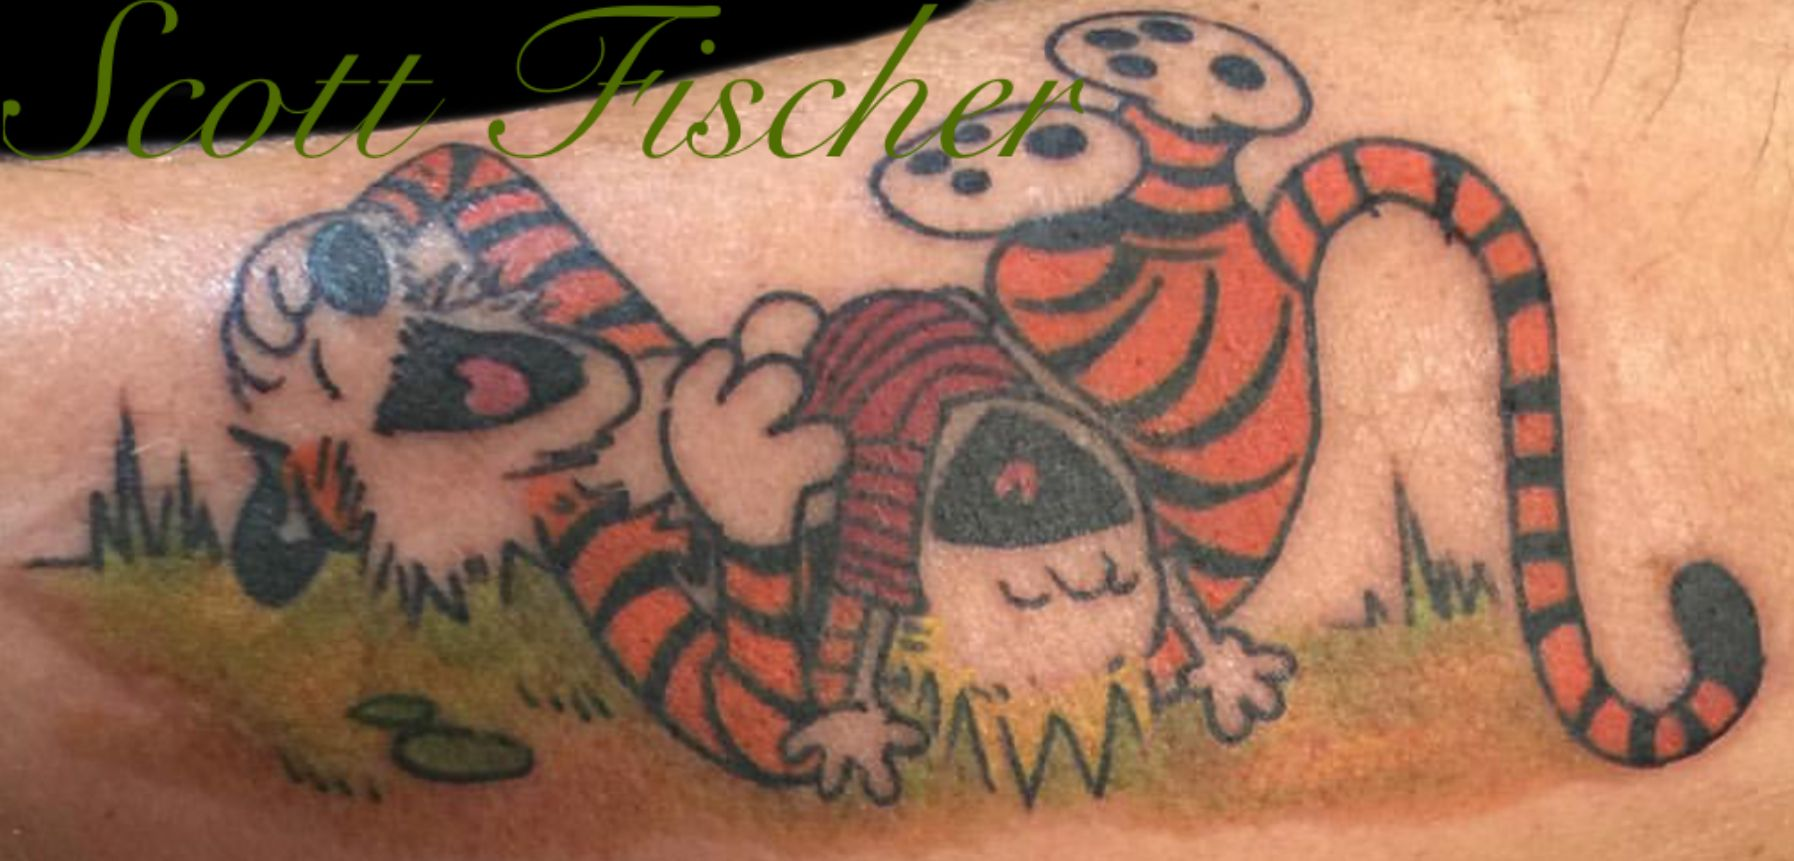 Calvin and hobbes tattoo done on forearm by tampa tattoo